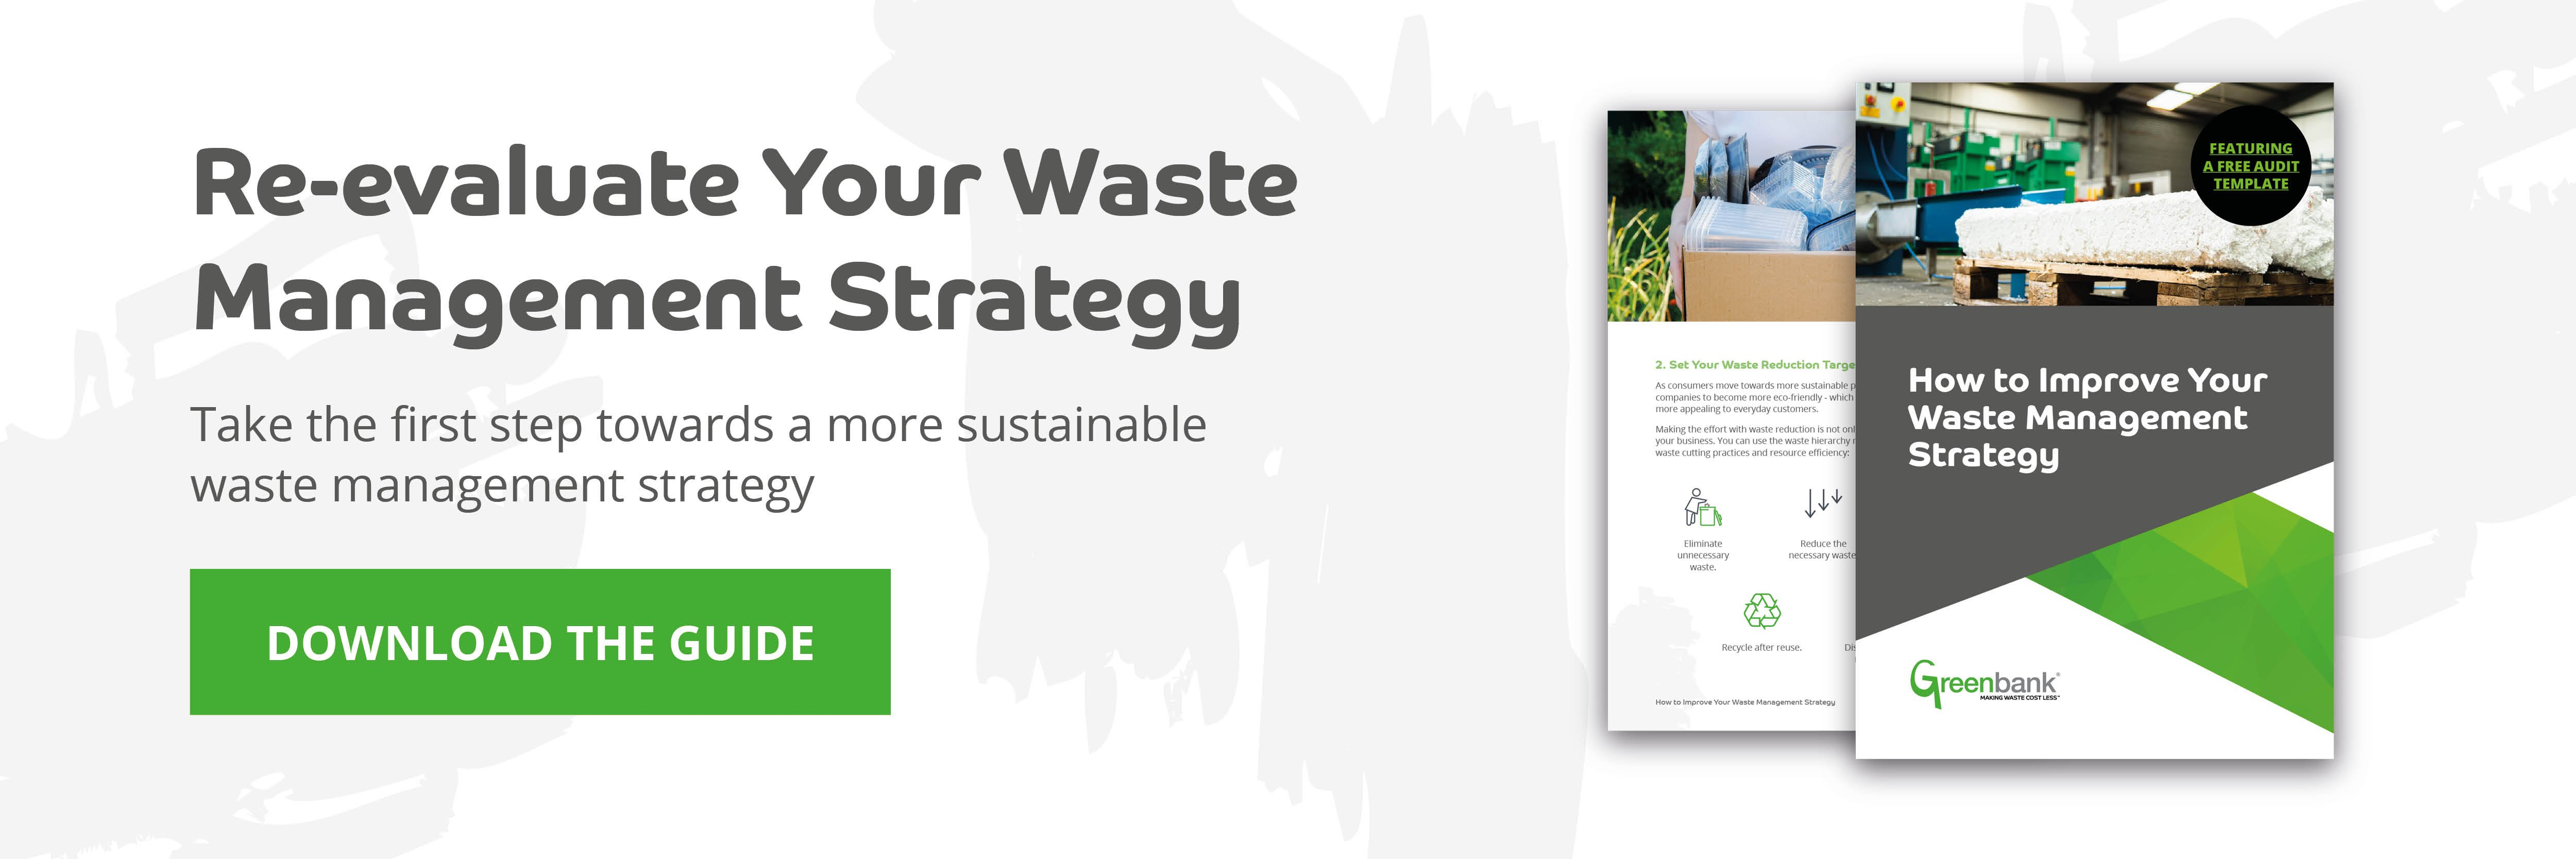 How to Improve Your Waste Managment Strategy CTA